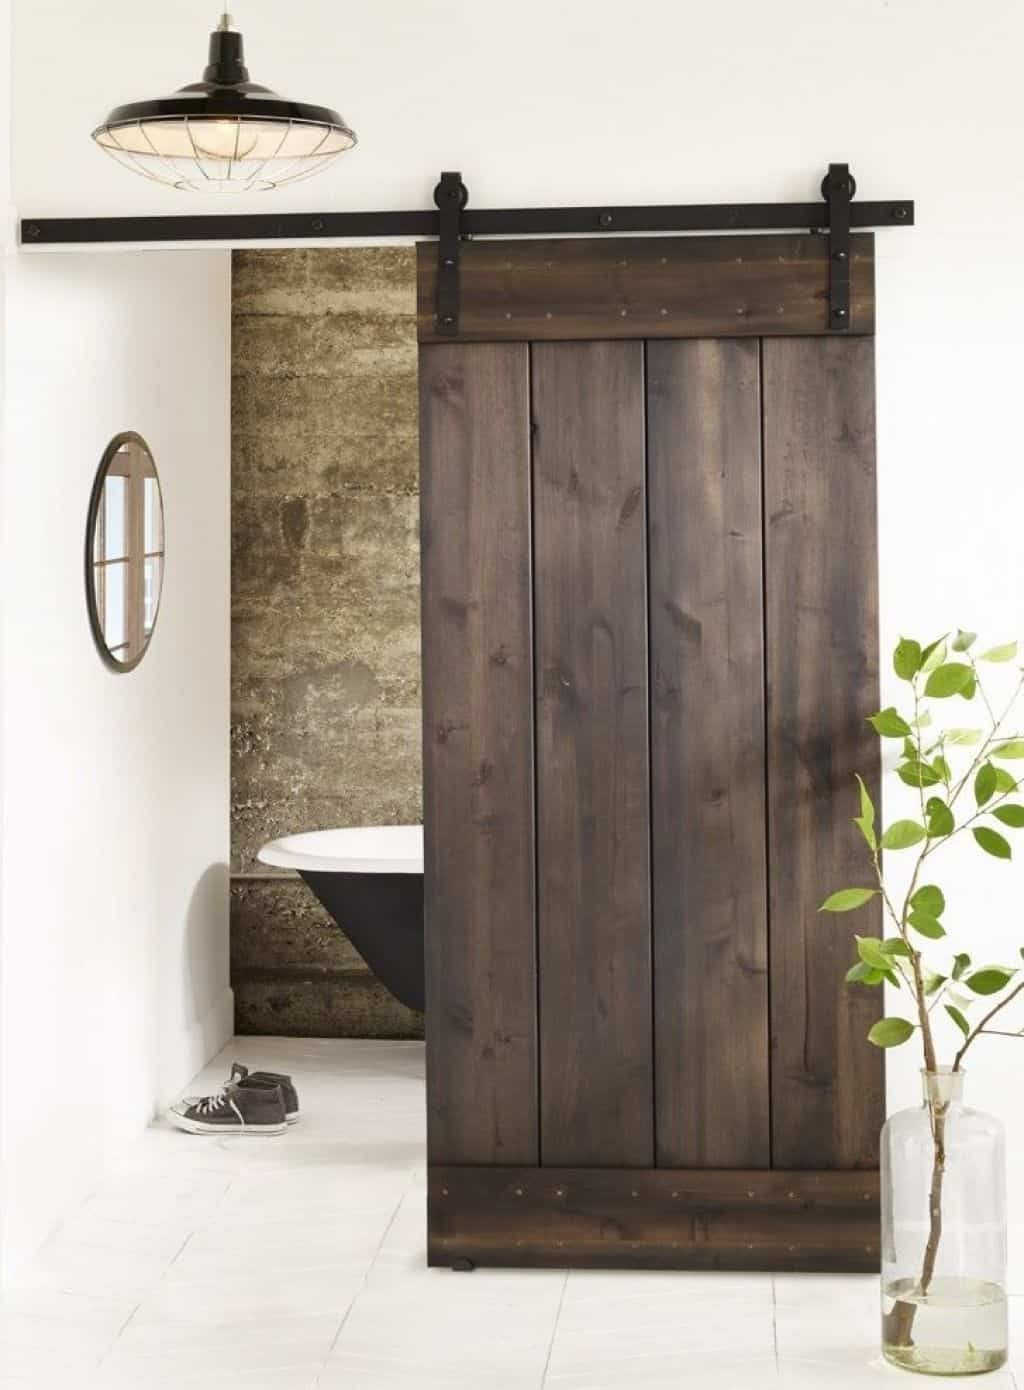 Fix A Squeaky Sliding Door In Your House Sliding Barn Door Hardware Barn Doors Sliding Wood Doors Interior